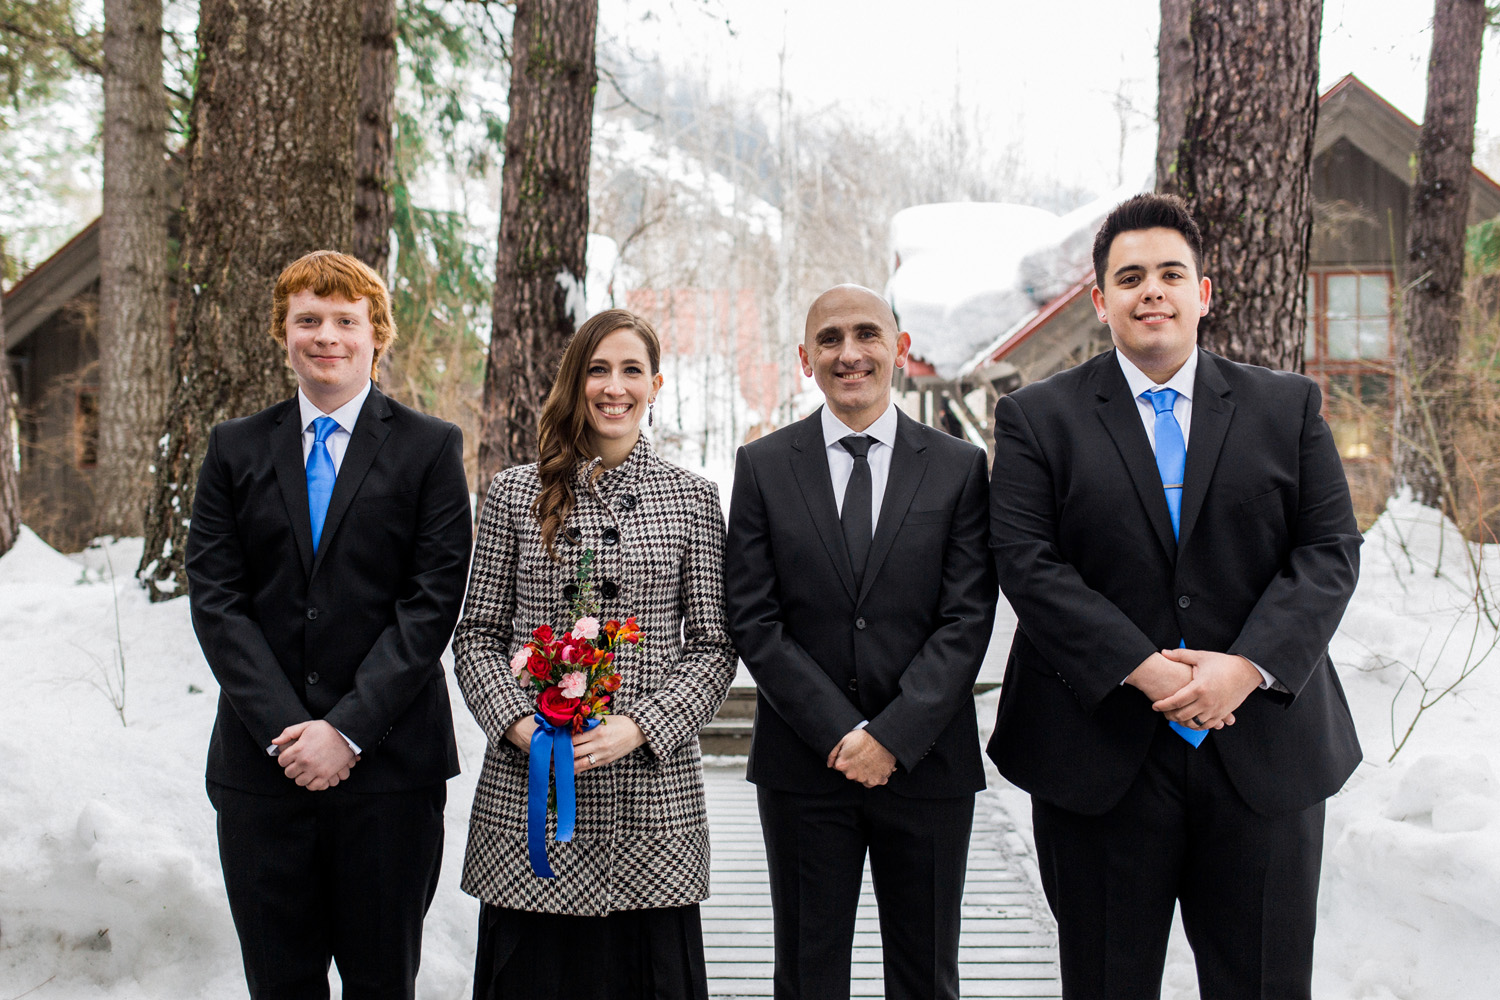 Bridal Party at the Sleeping Lady Mountain Resort in Leavenworth Winter wedding photography